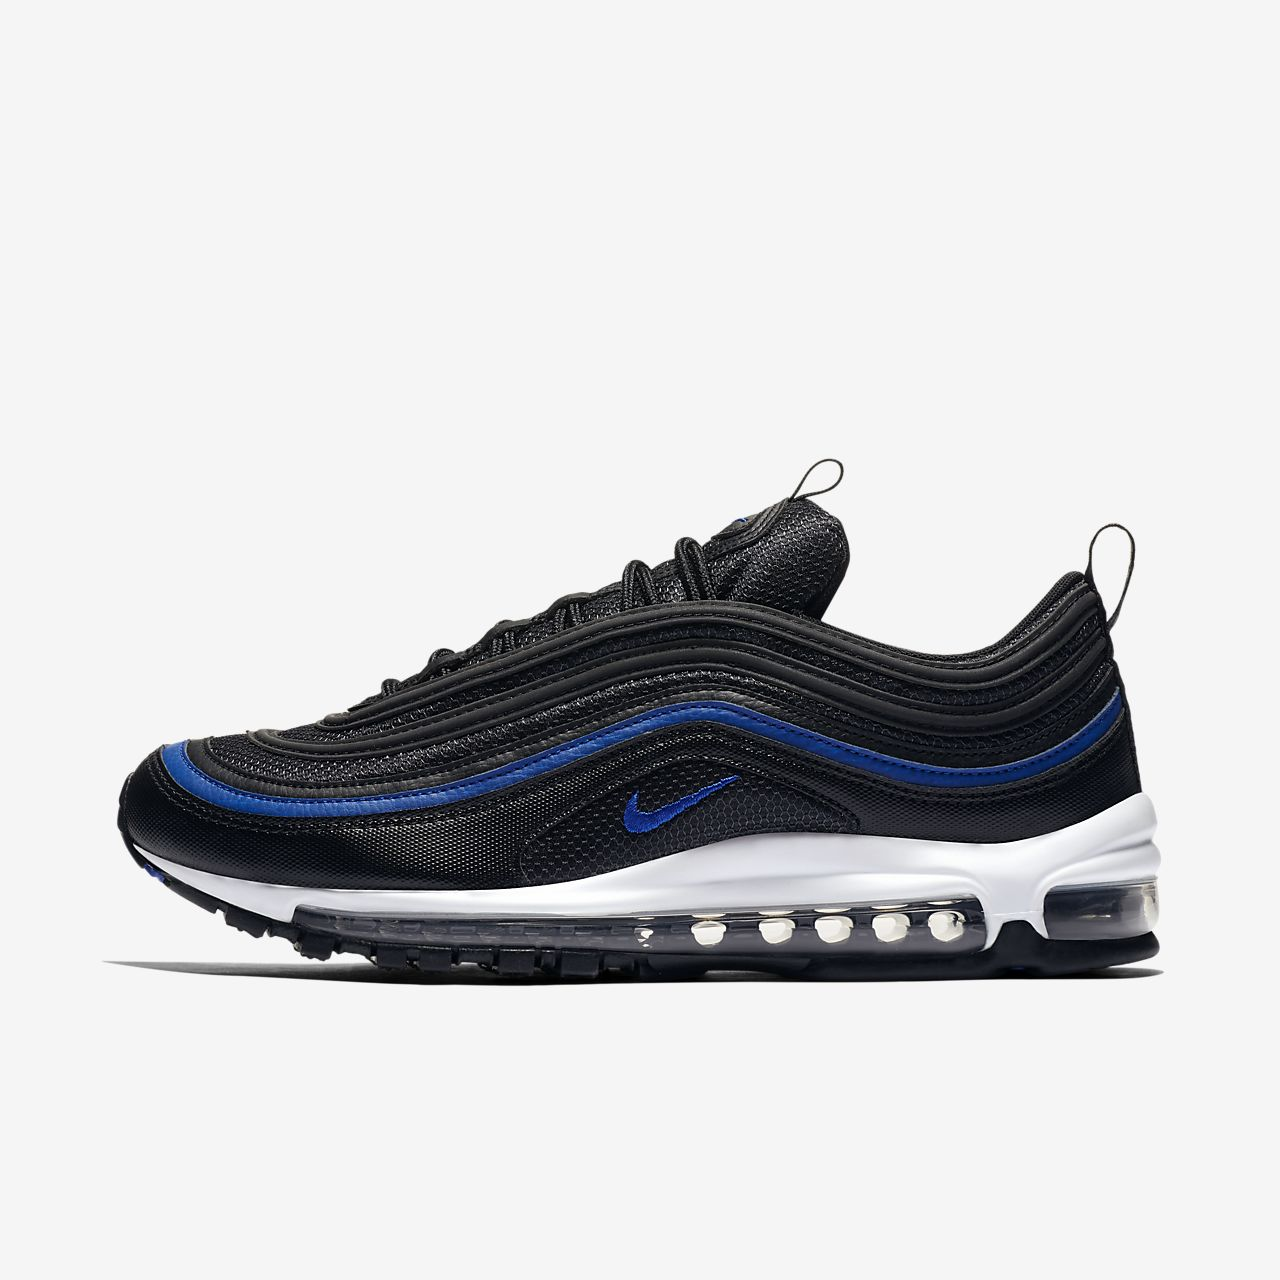 detailed look 809f8 d066f Nike Air Max 97 Og : Buy Nike Sneakers & Shoes | Air force 1 ...